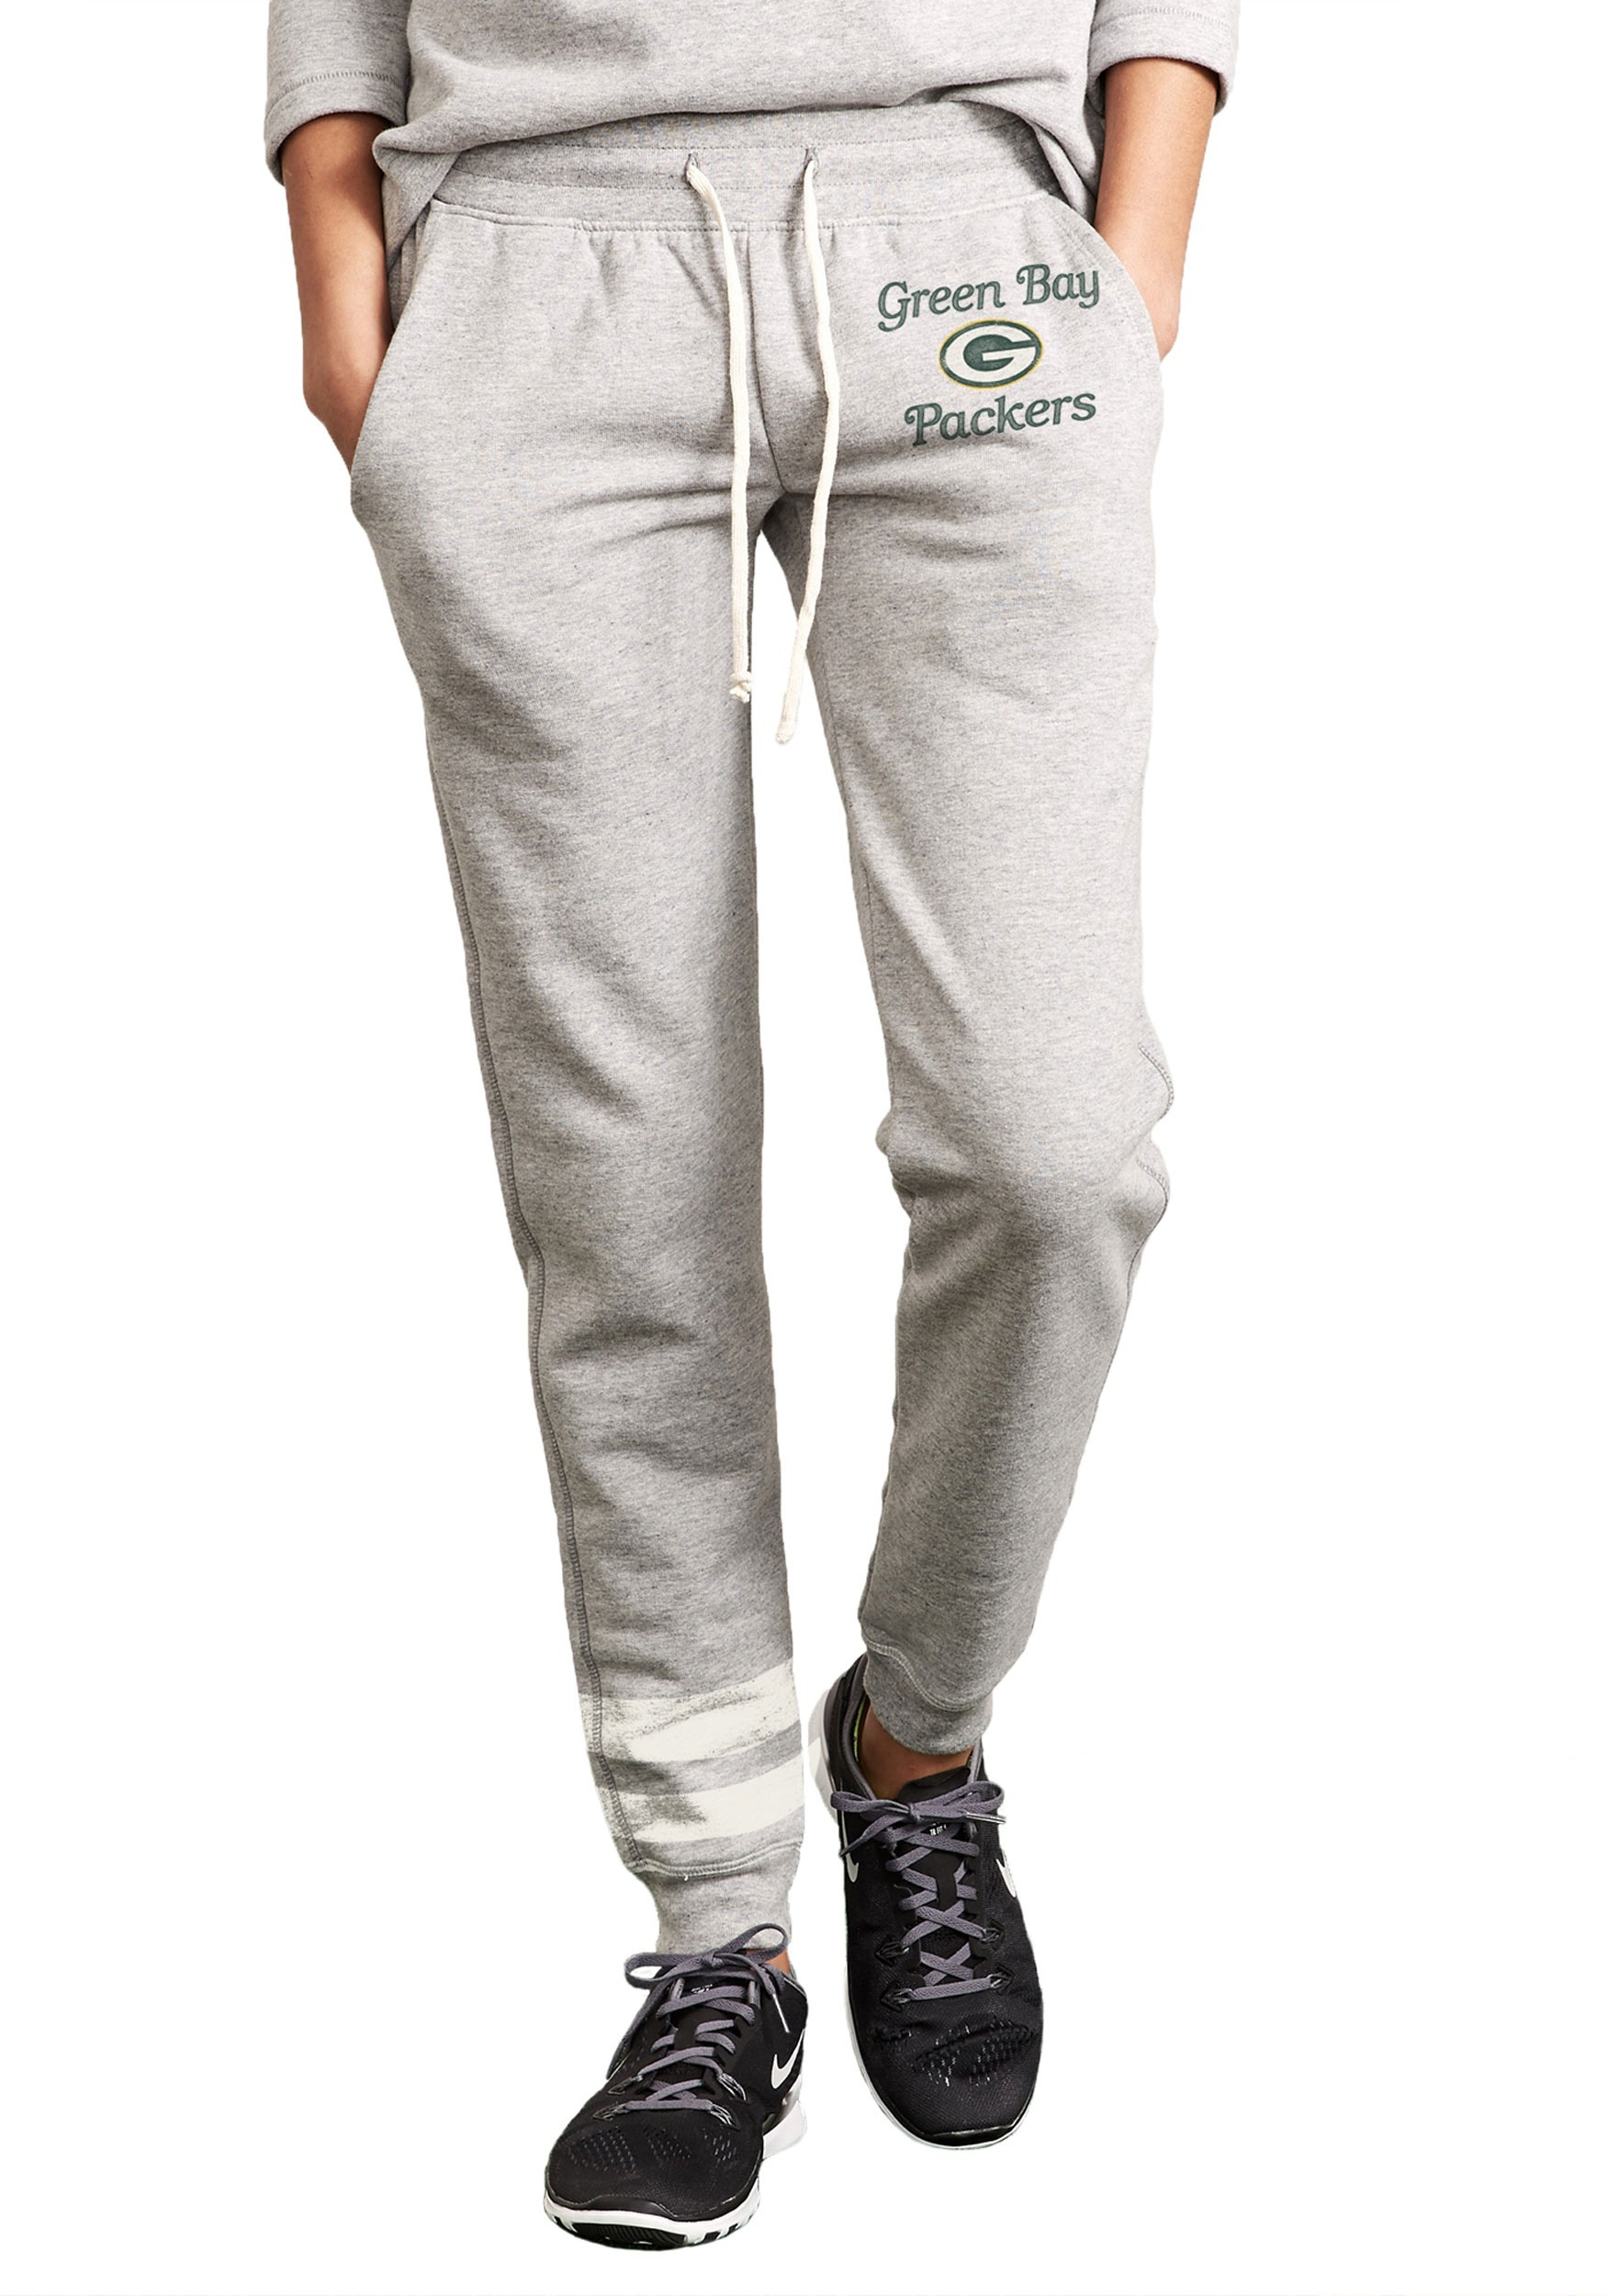 Green Bay Packers Sunday Sweat Pants for Women